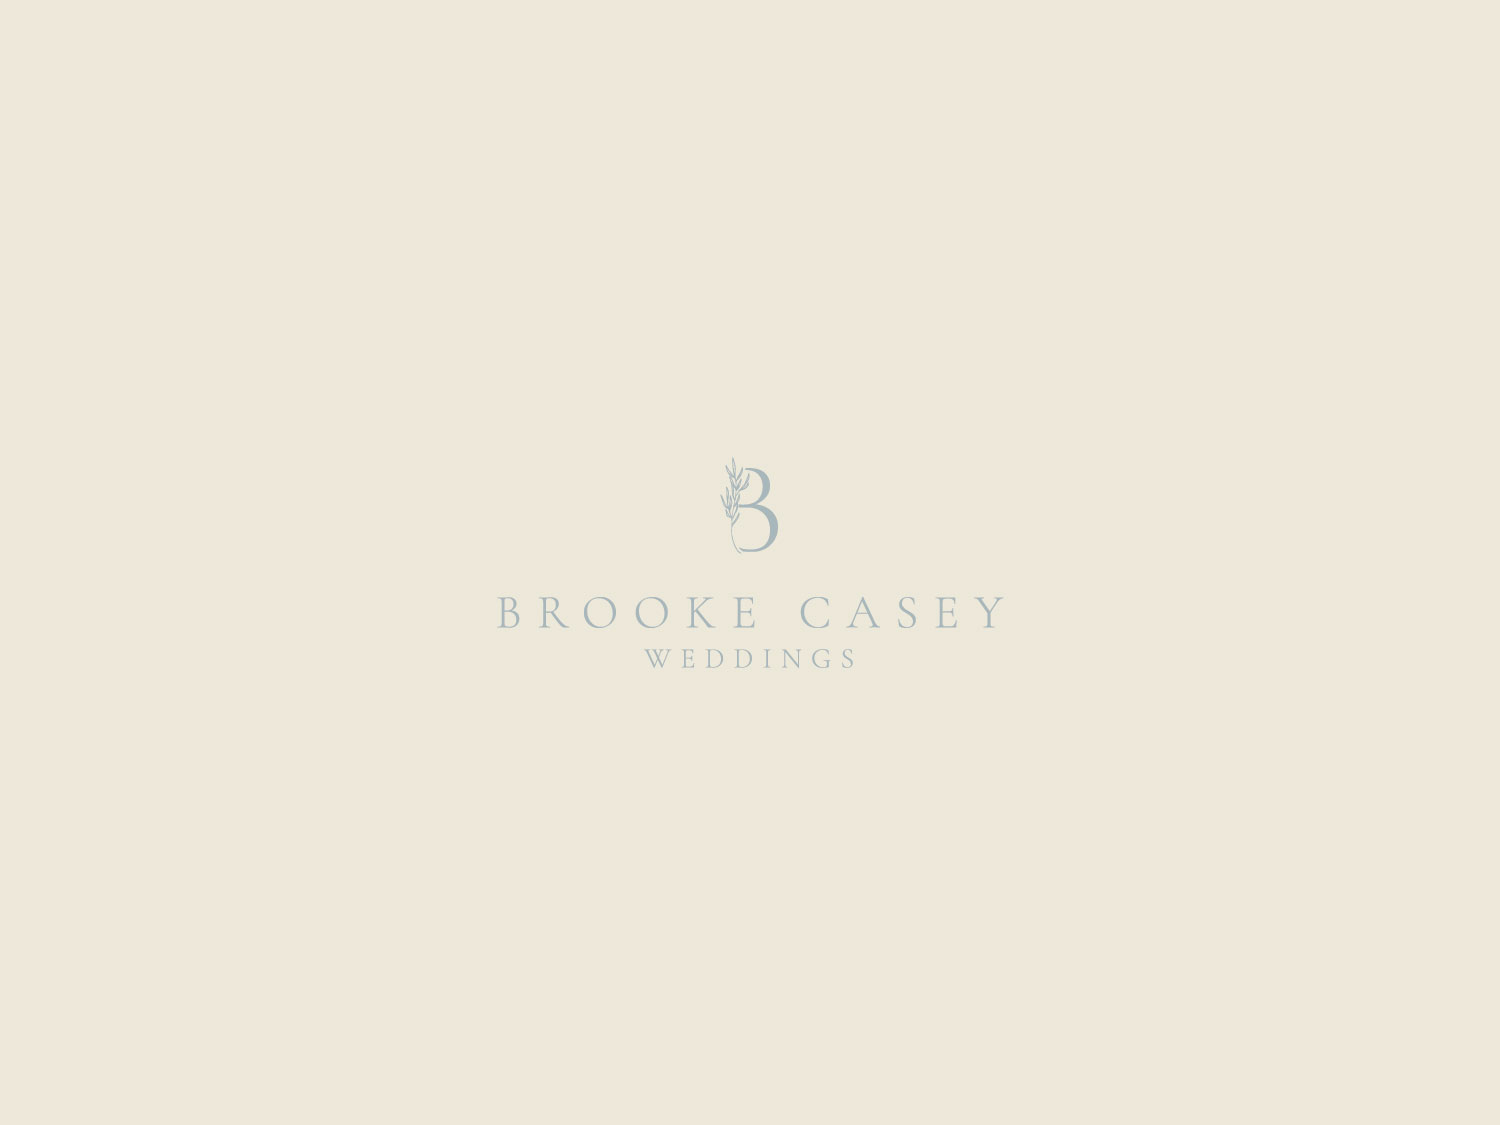 Since Brooke has a very calming presence, we went with a peaceful color palette of soft blues and muted neutrals. We also chose a serif font that had a boutique feel while still speaking to her down-to-earth brides. We added a foliage detail to her logo to complete the organic look.